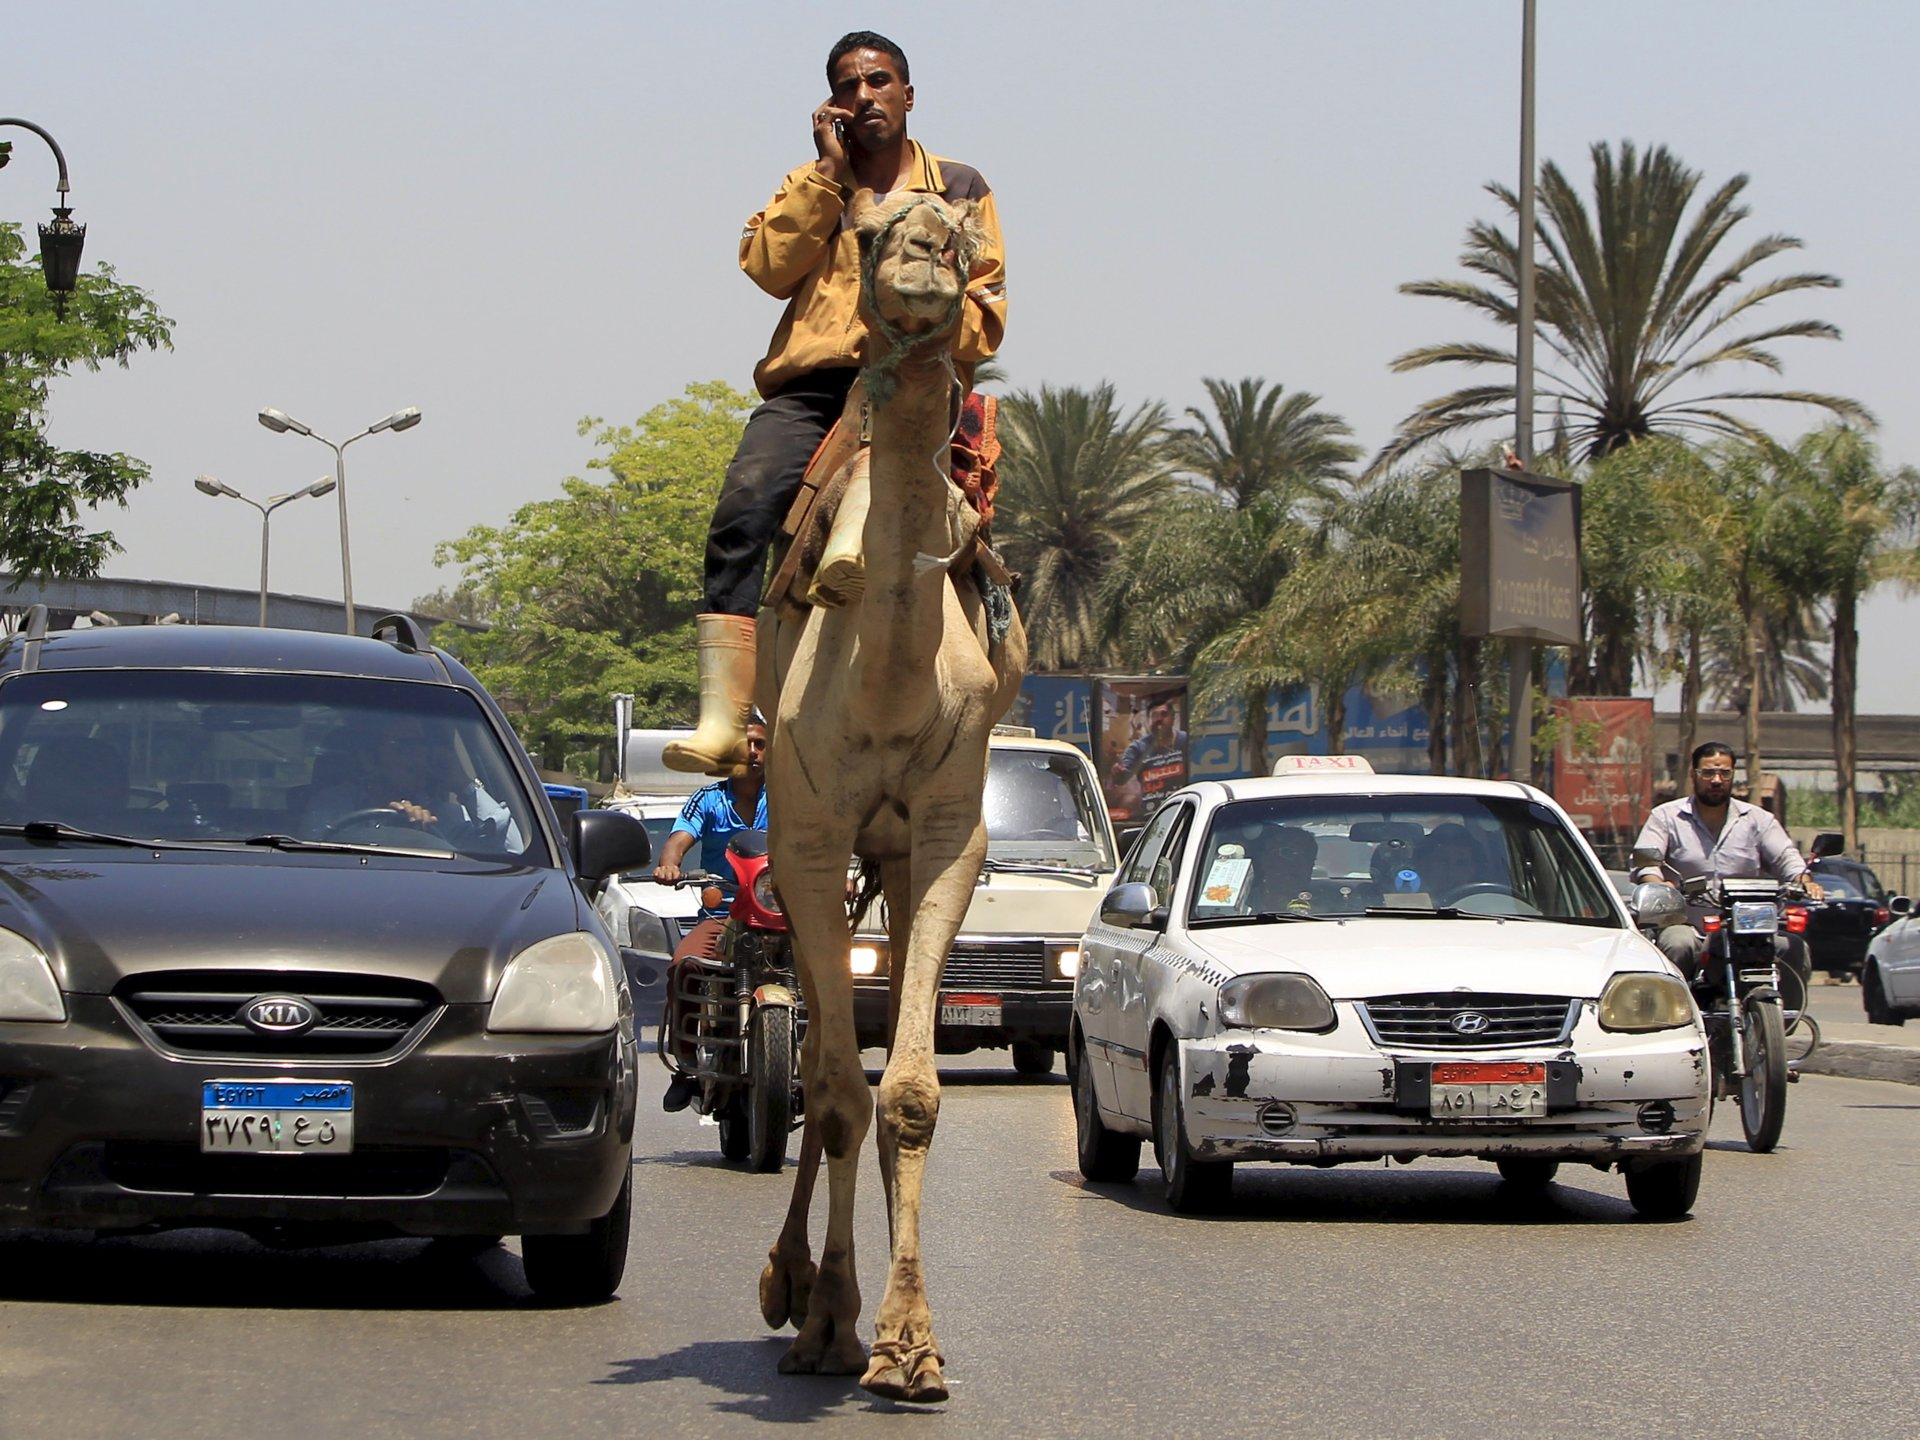 Uber is locked in a battle to fix Egypt's $8 billion traffic problem, and its success could decide which tech giant will dominate the Middle East and Africa